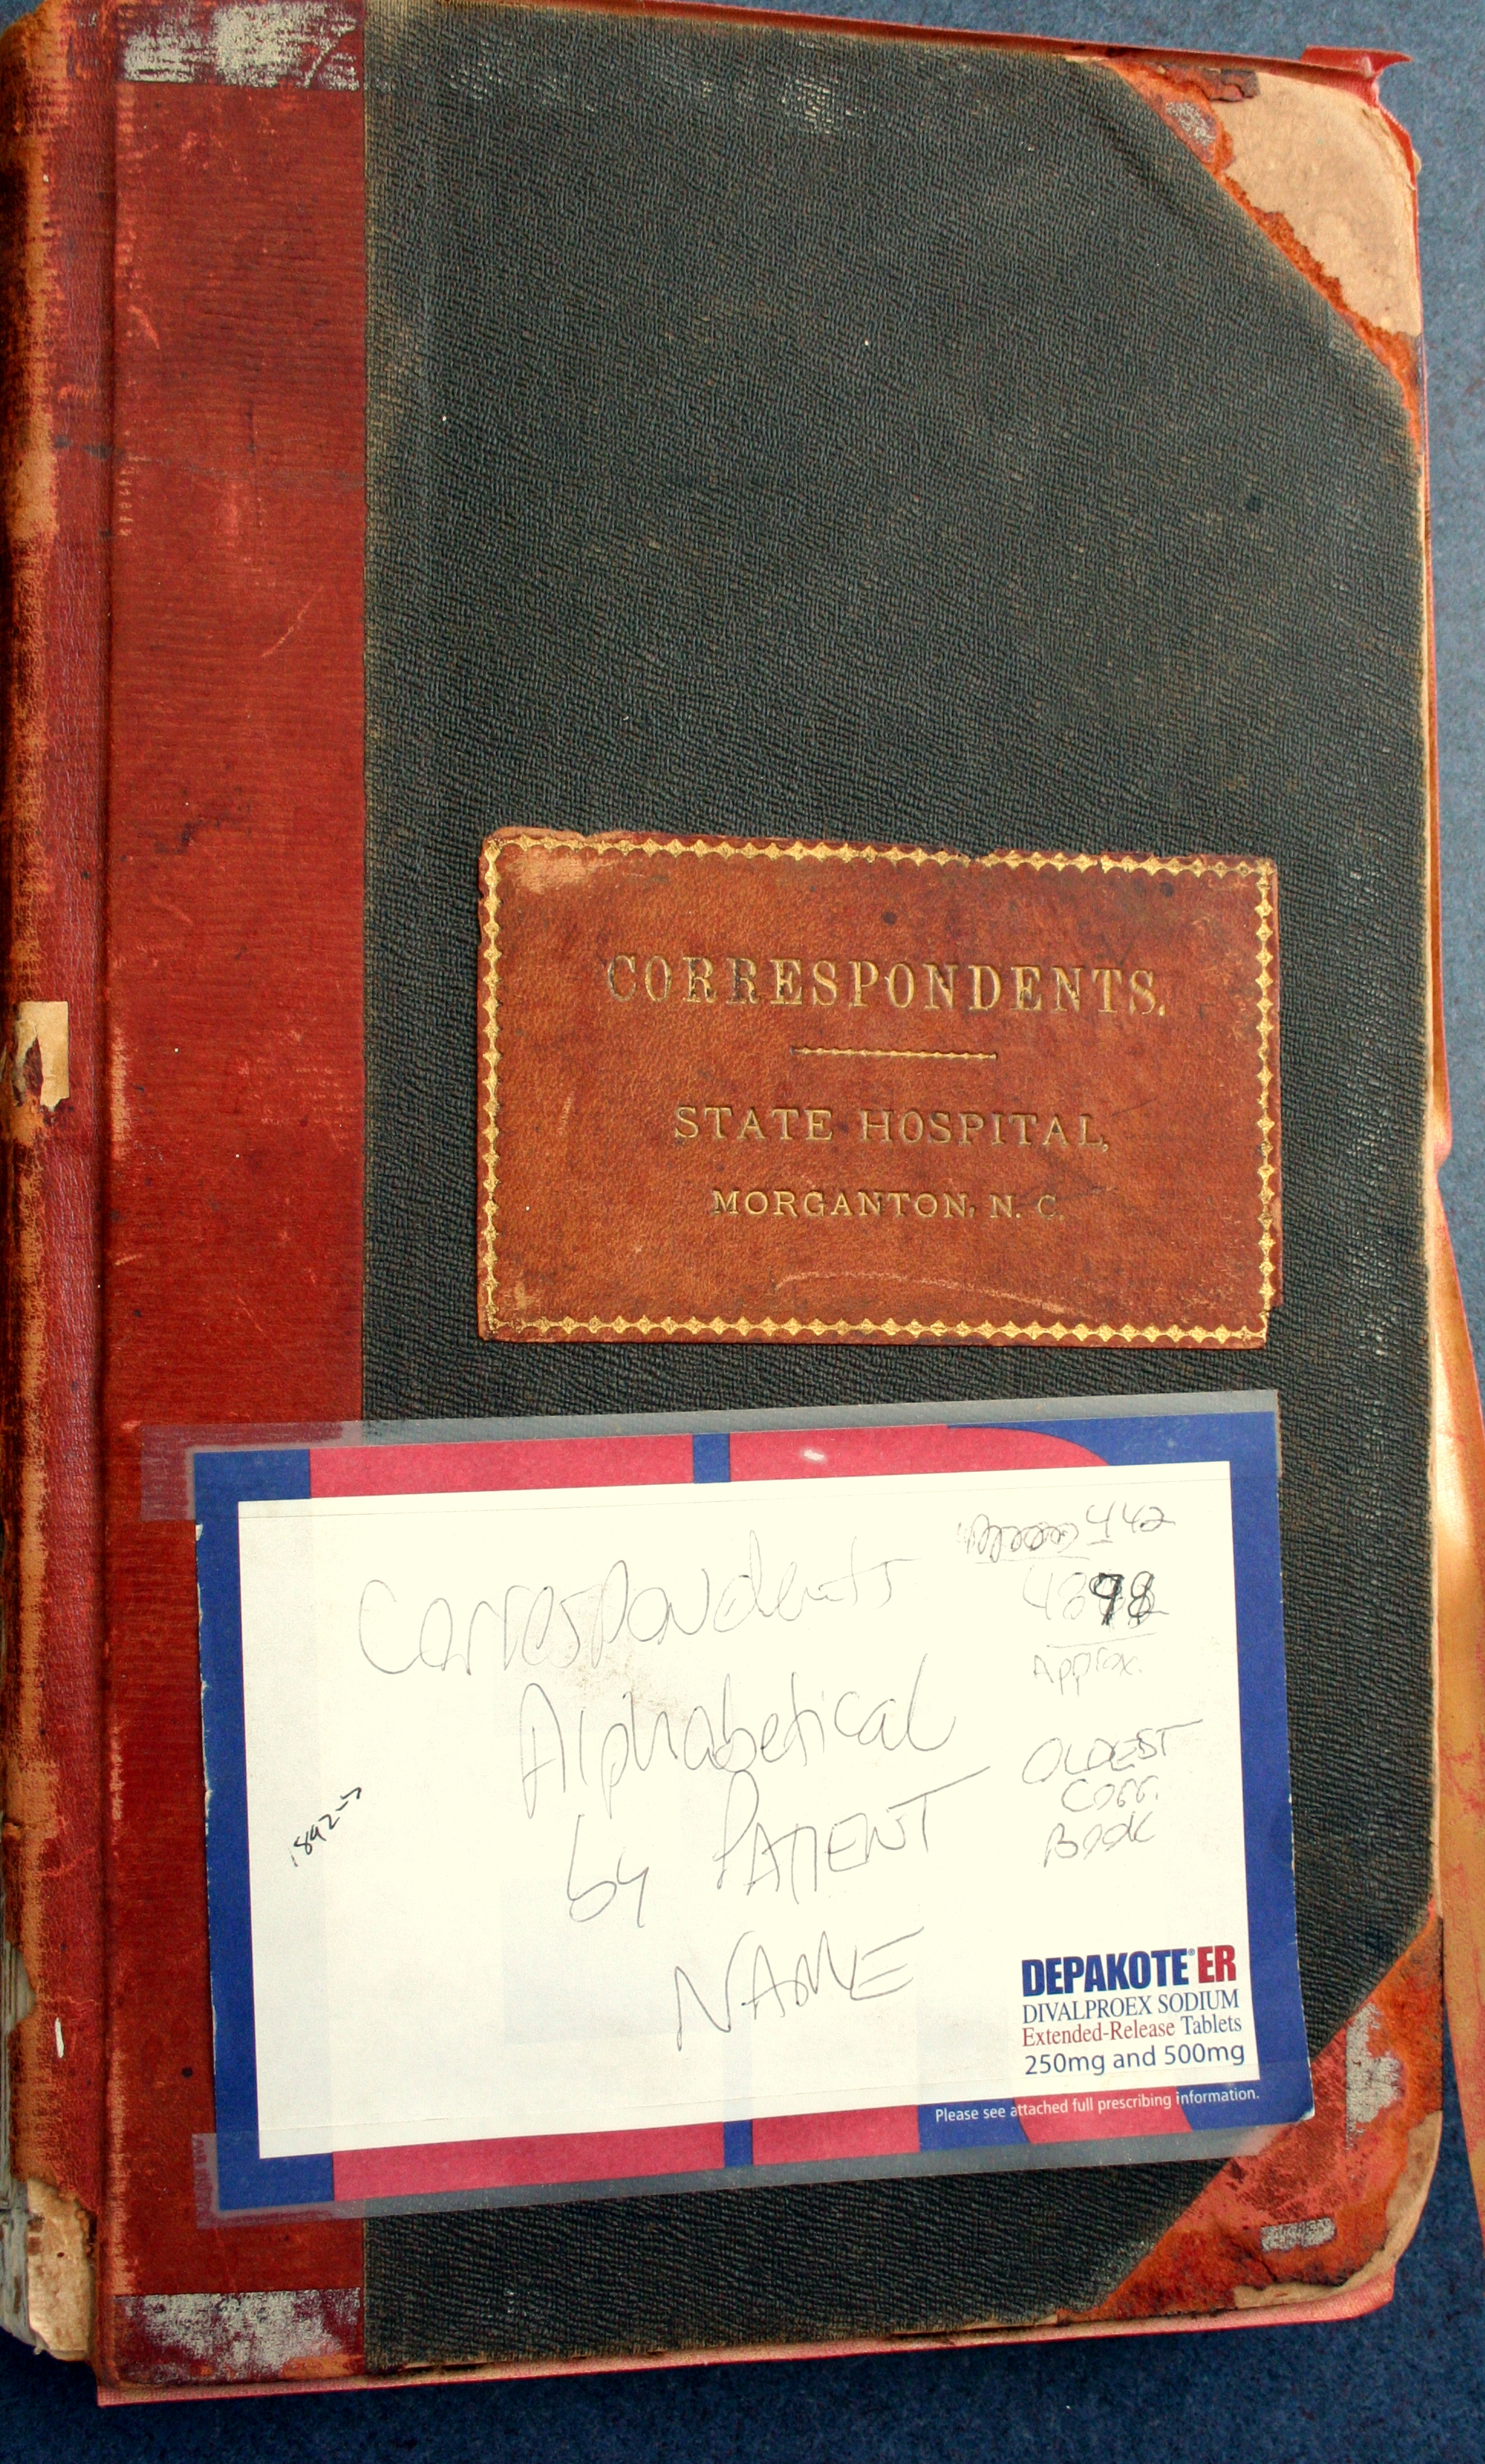 Correspondents book lists person of contact. In Hannah's case, it was her father, DJ English.